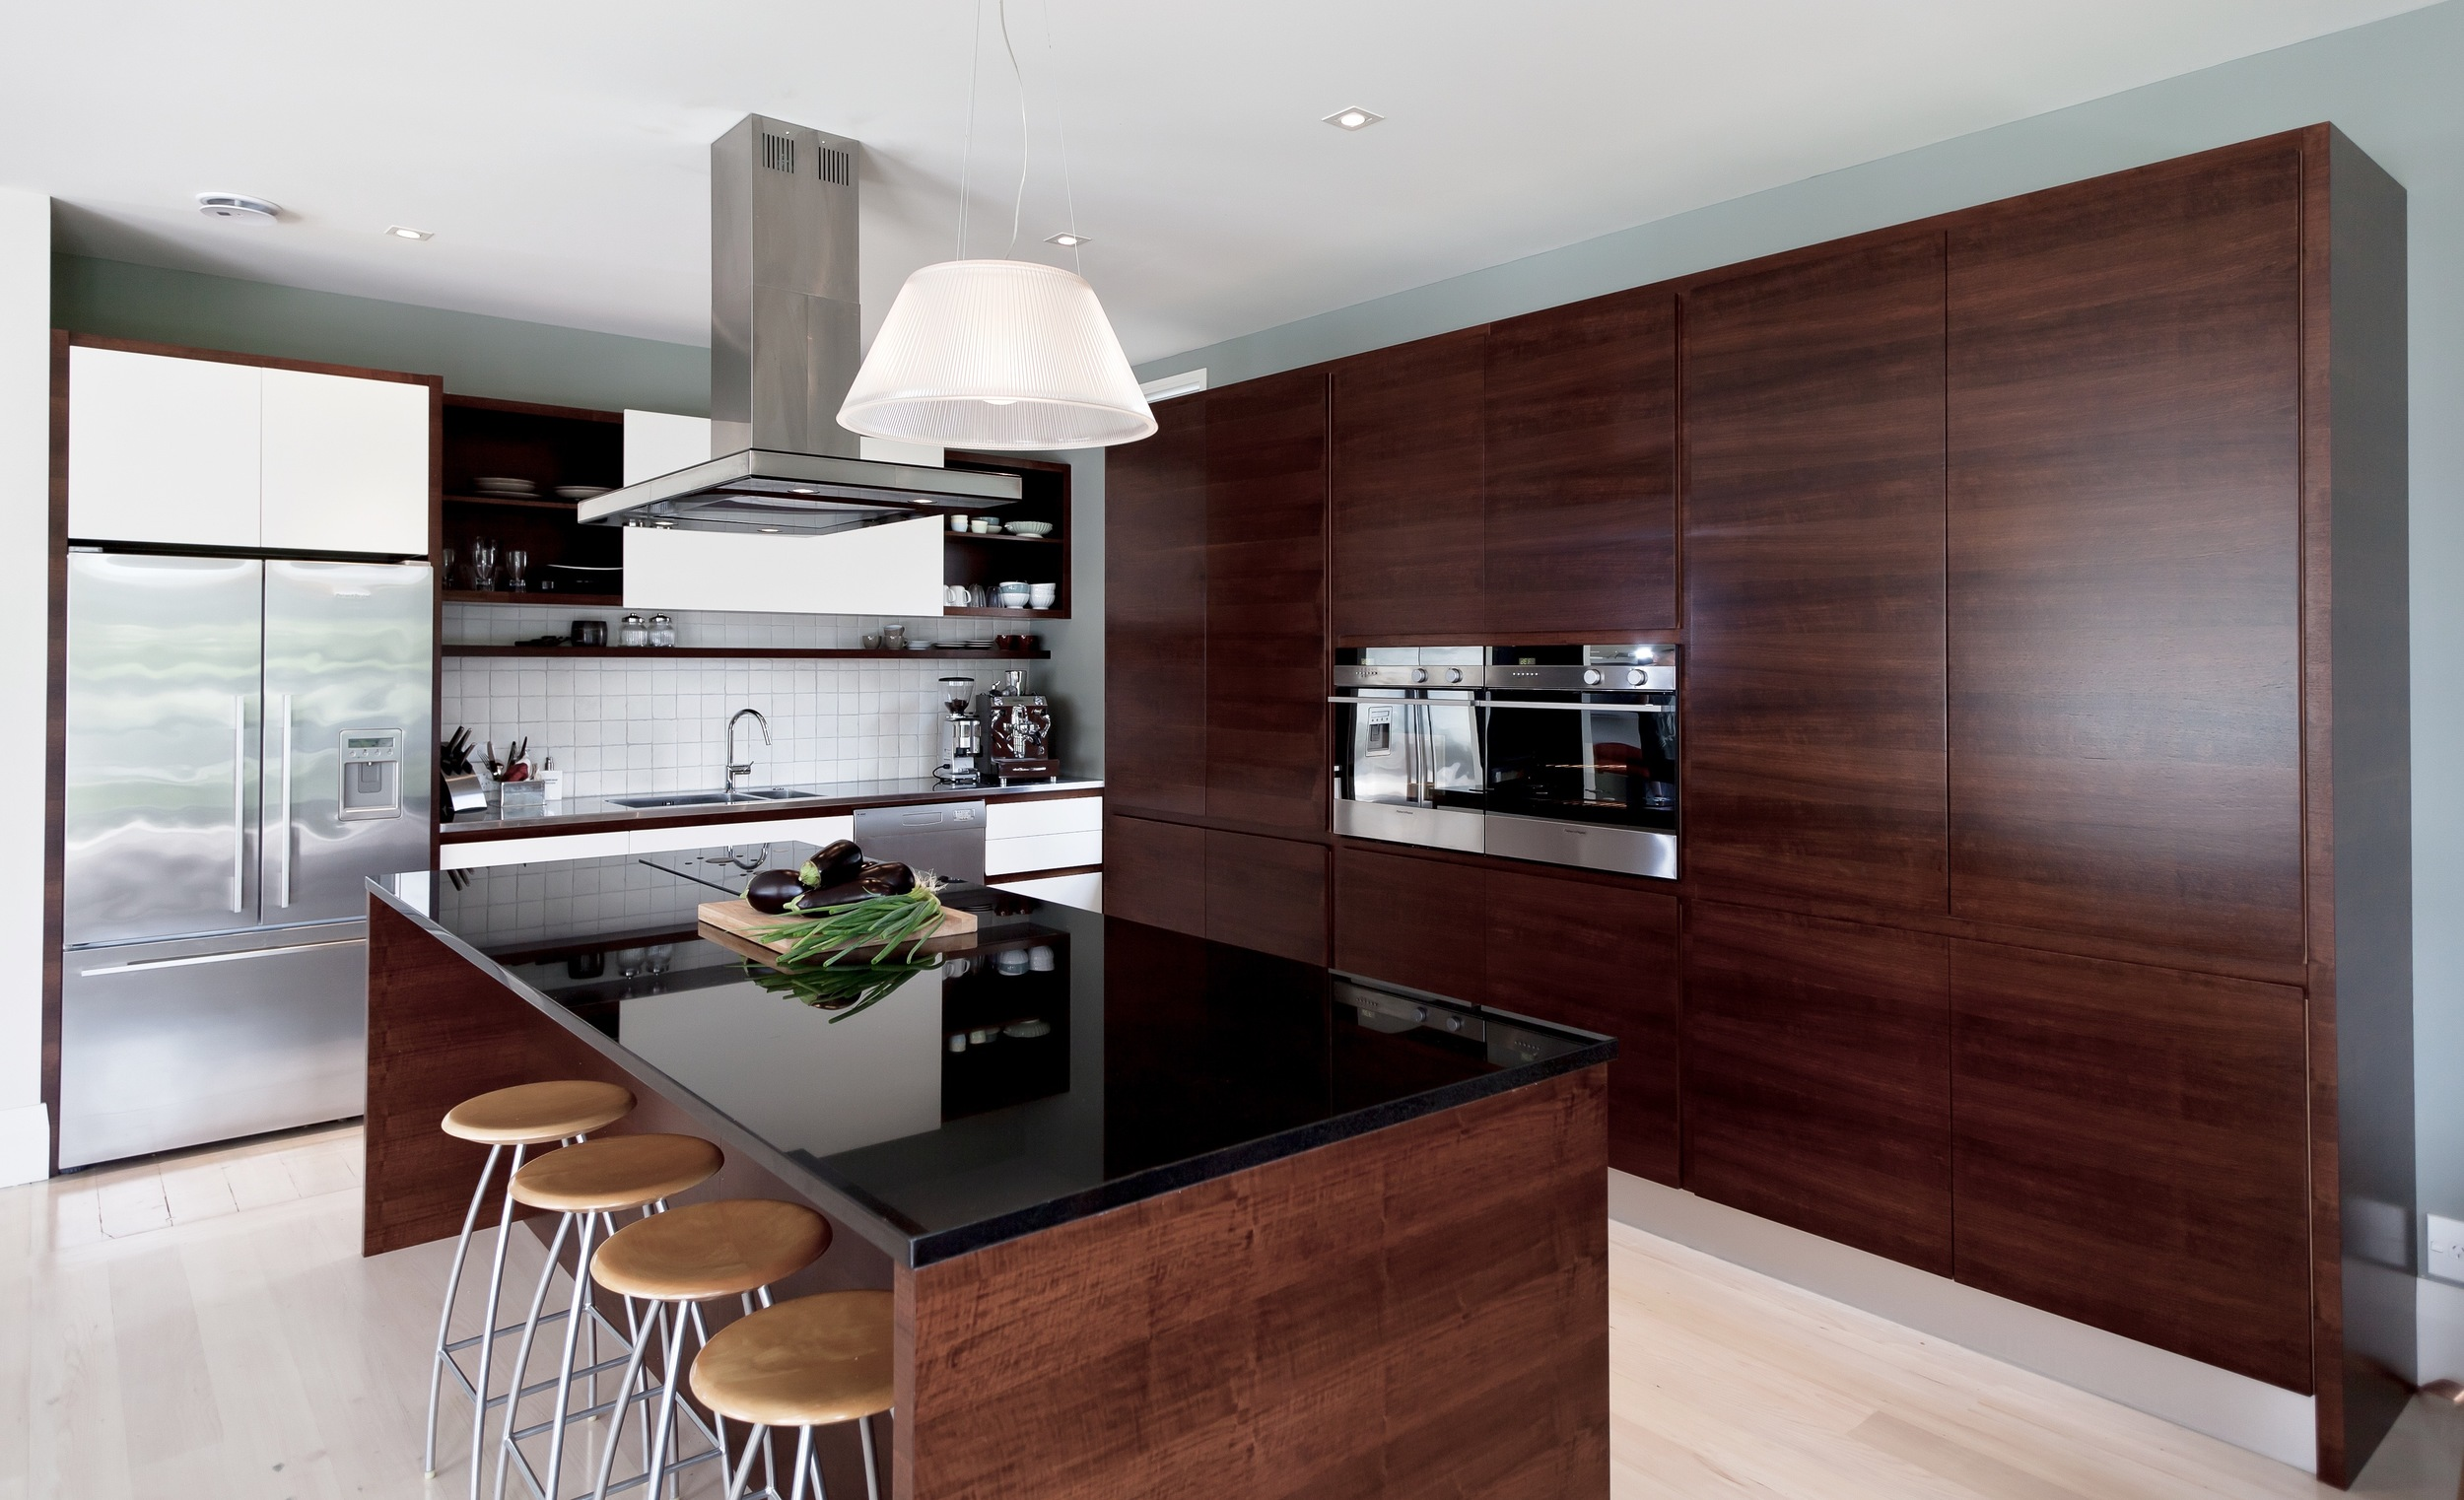 Sonya Cotter Interiors - Kitchen Designer Auckland